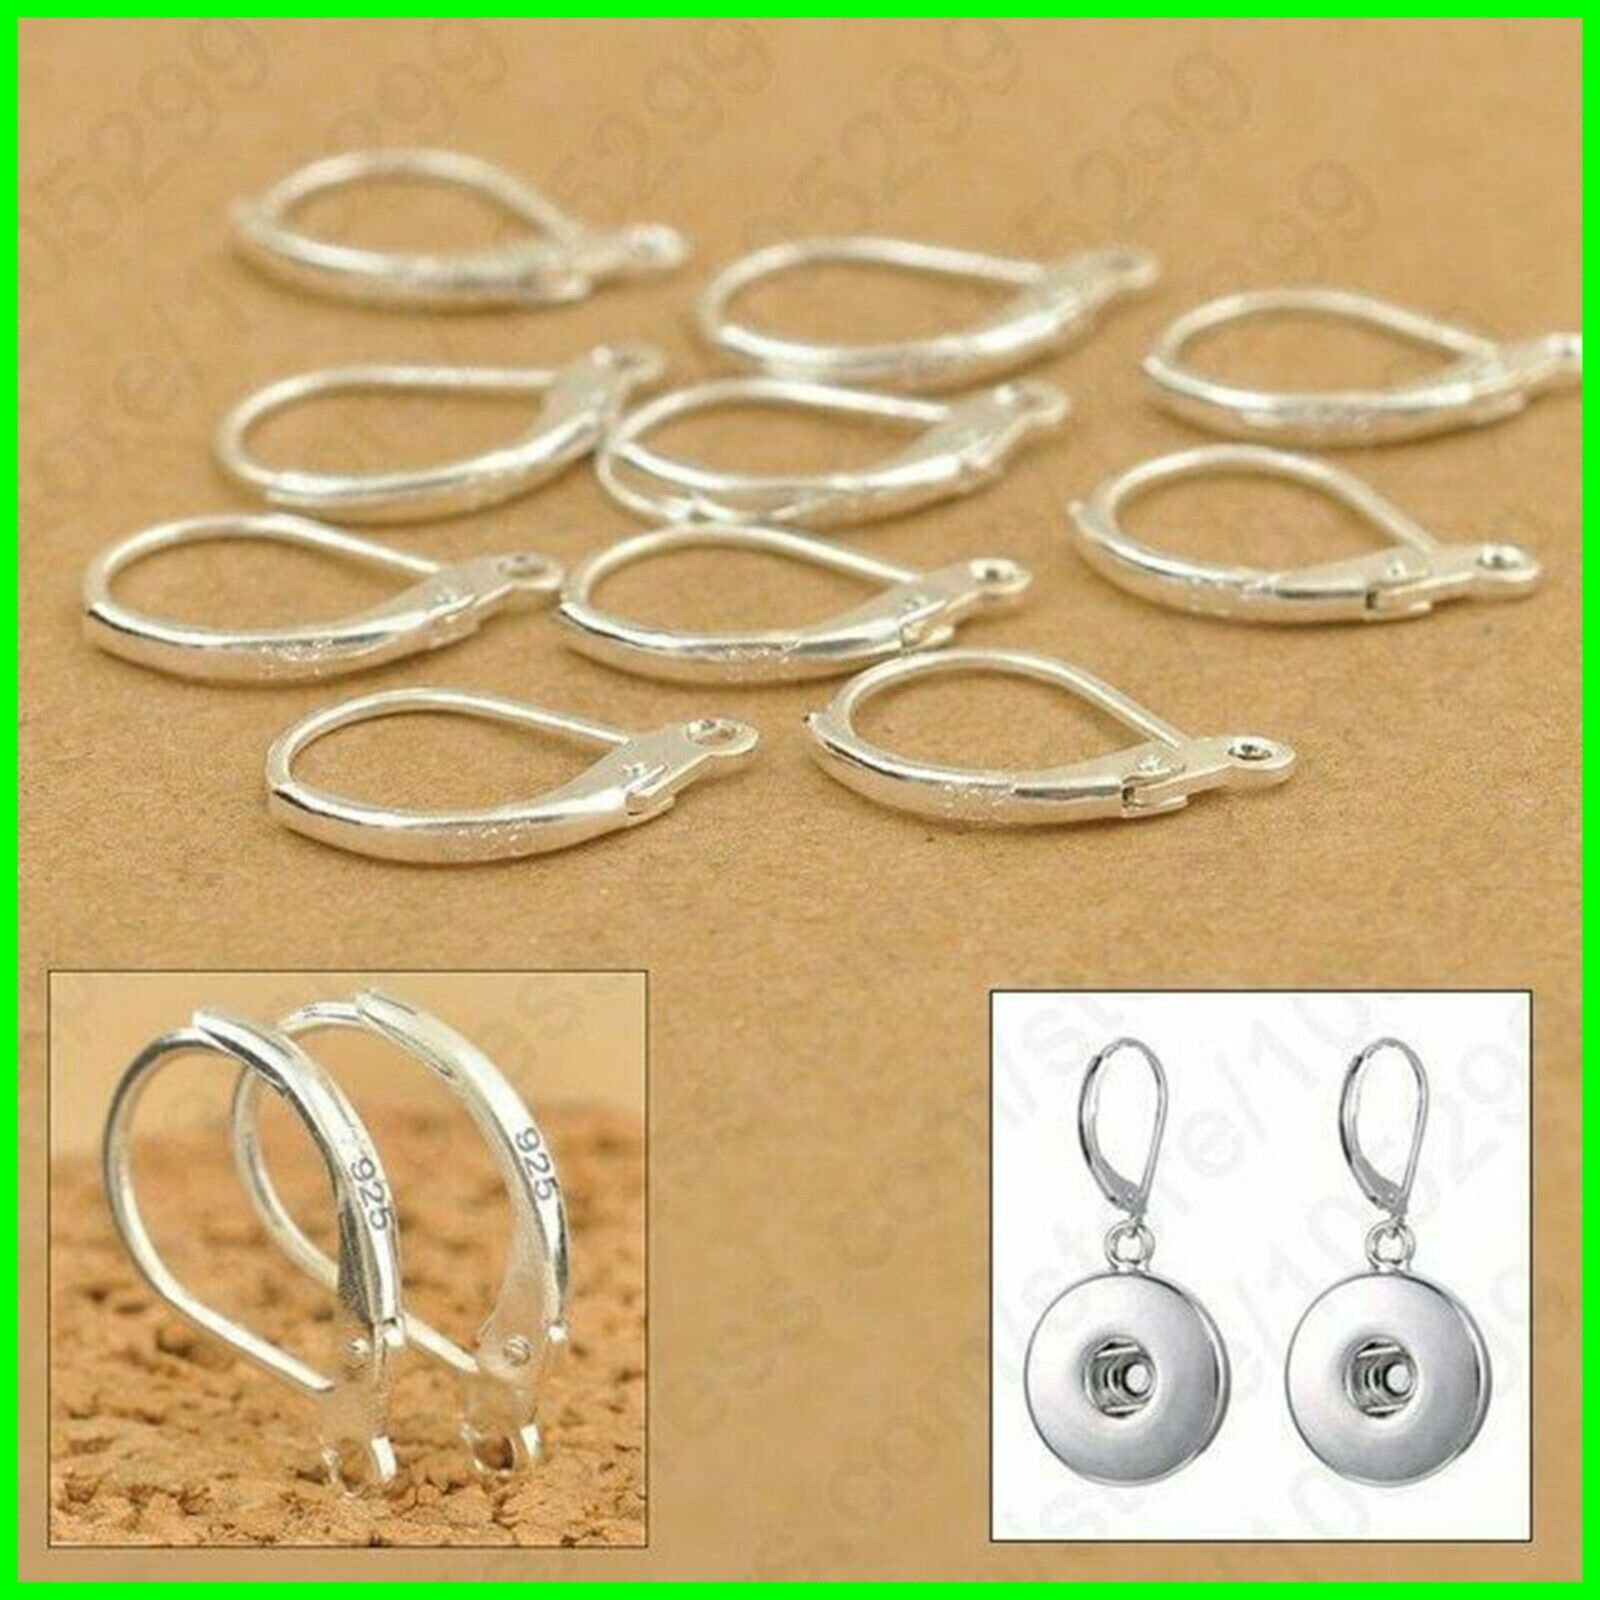 Details About 100pcs 925 Sterling Silver Earring Hooks Beads For Jewelry Making Ear Wires Set